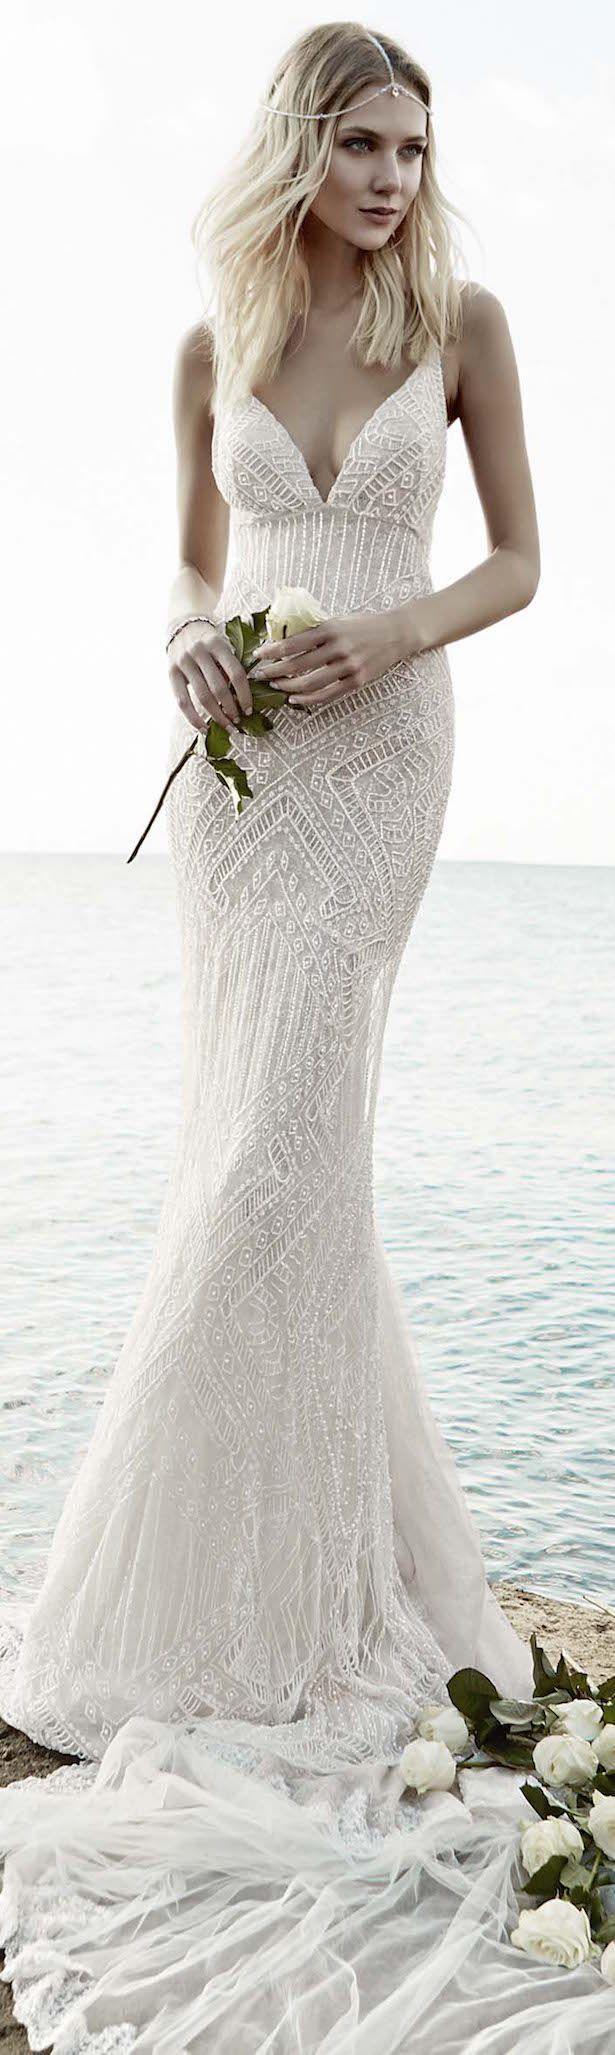 The beaded detailing on this dress is absolutely stunning! Check out the collection for wedding dress inspiration.